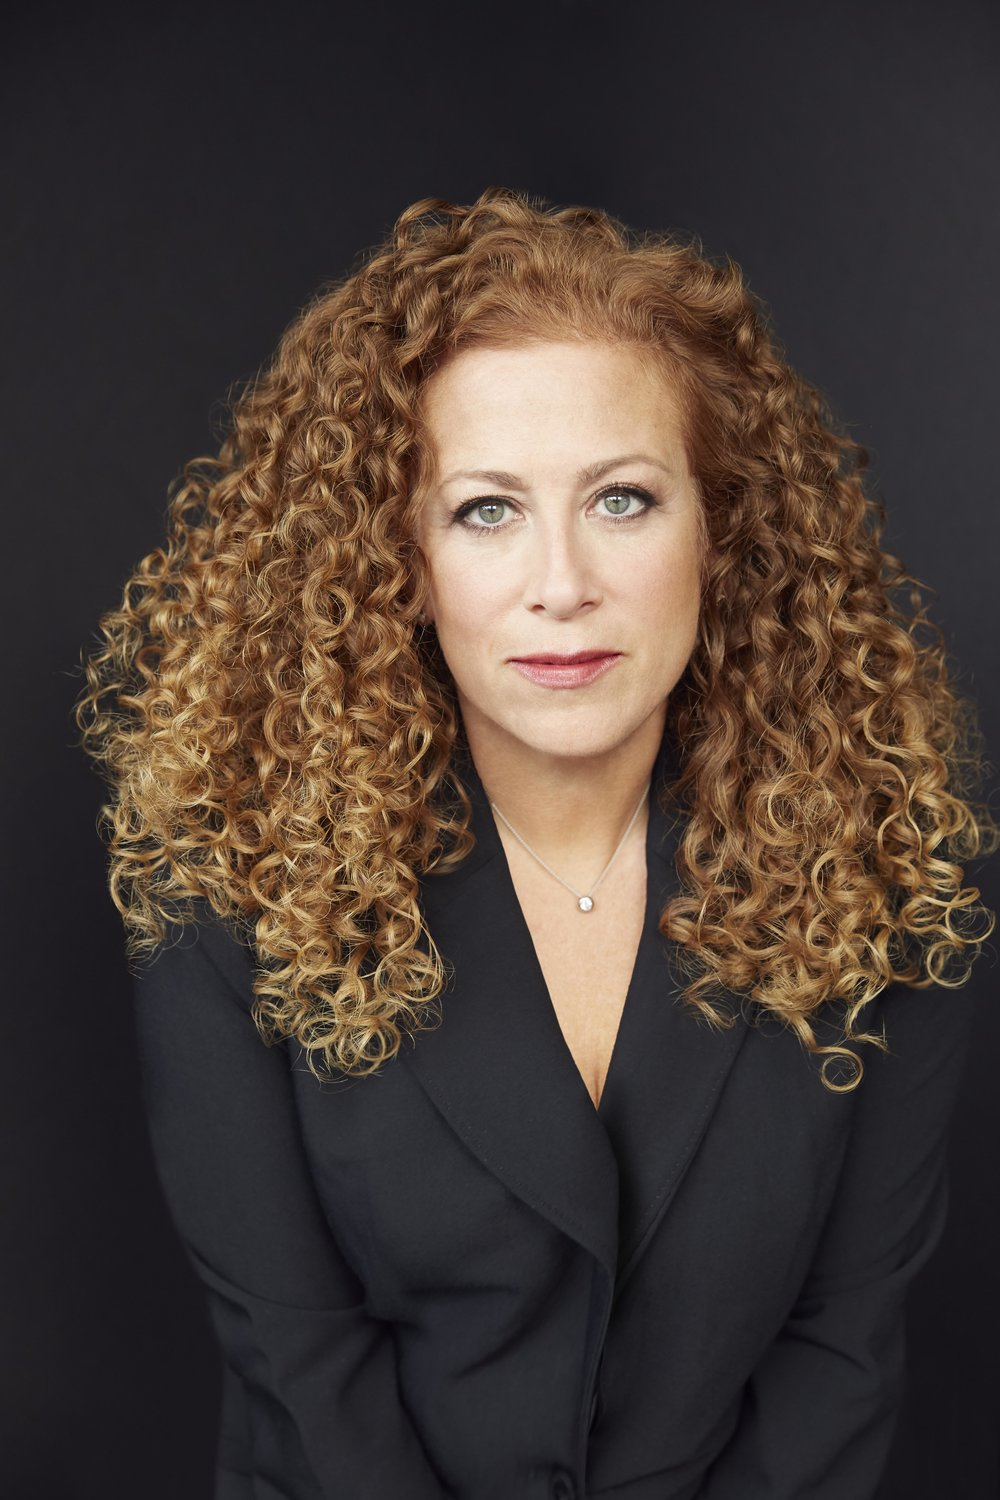 I was the mom who took my laptop to swim practice and to nursery school pickup. I learned that if you have even 15 minutes, you can get something out. - Jodi PIcoult